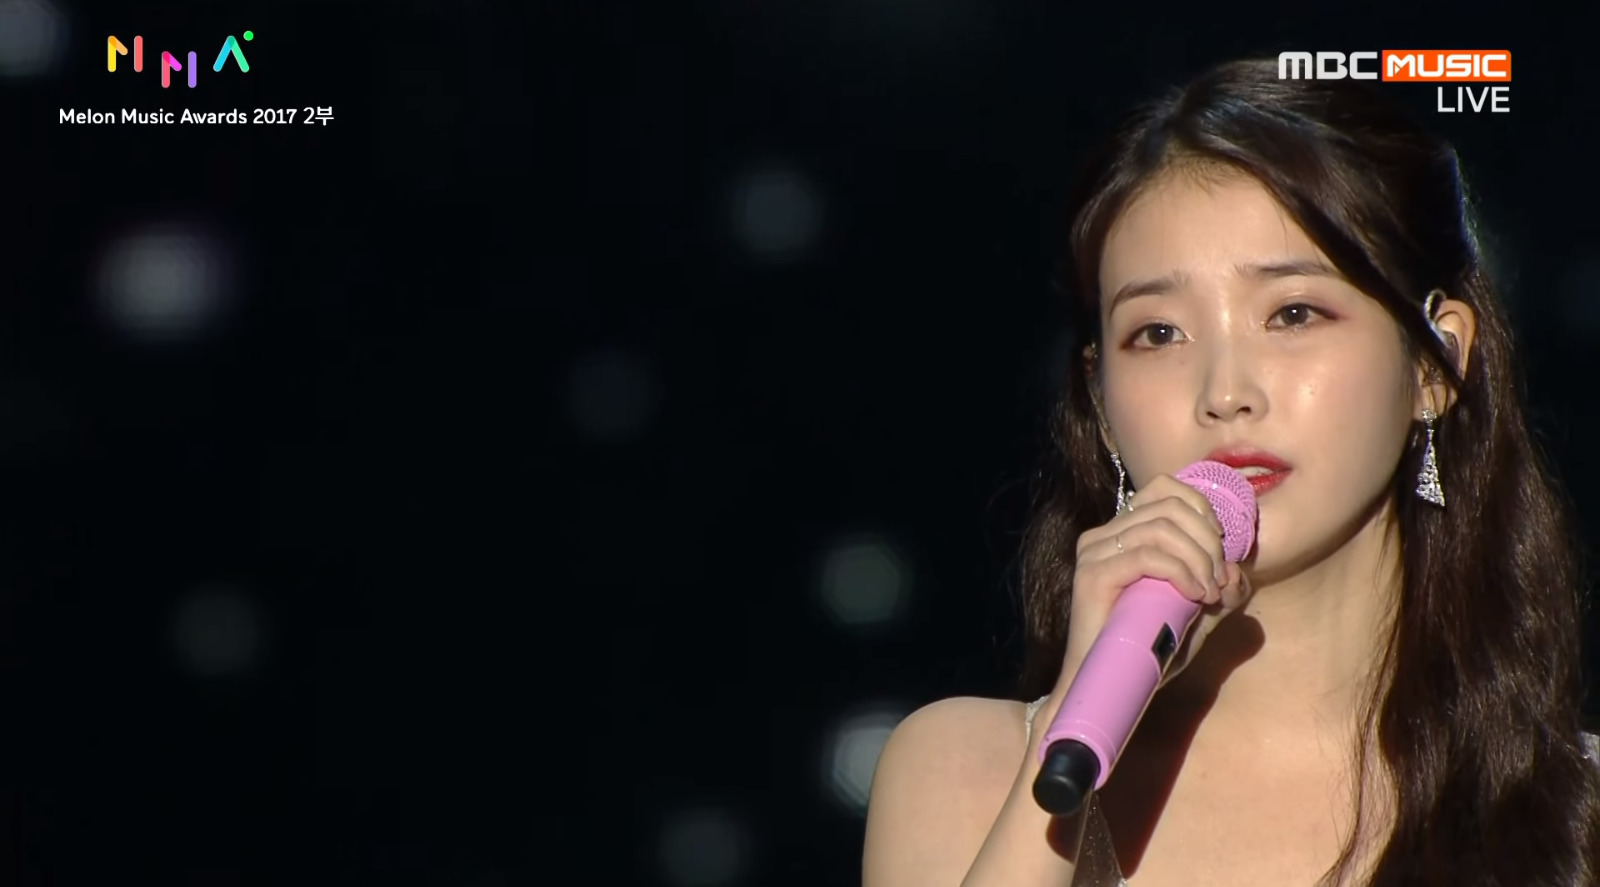 IU performing at the 2017 Melon Music Awards. Photo from MBC.